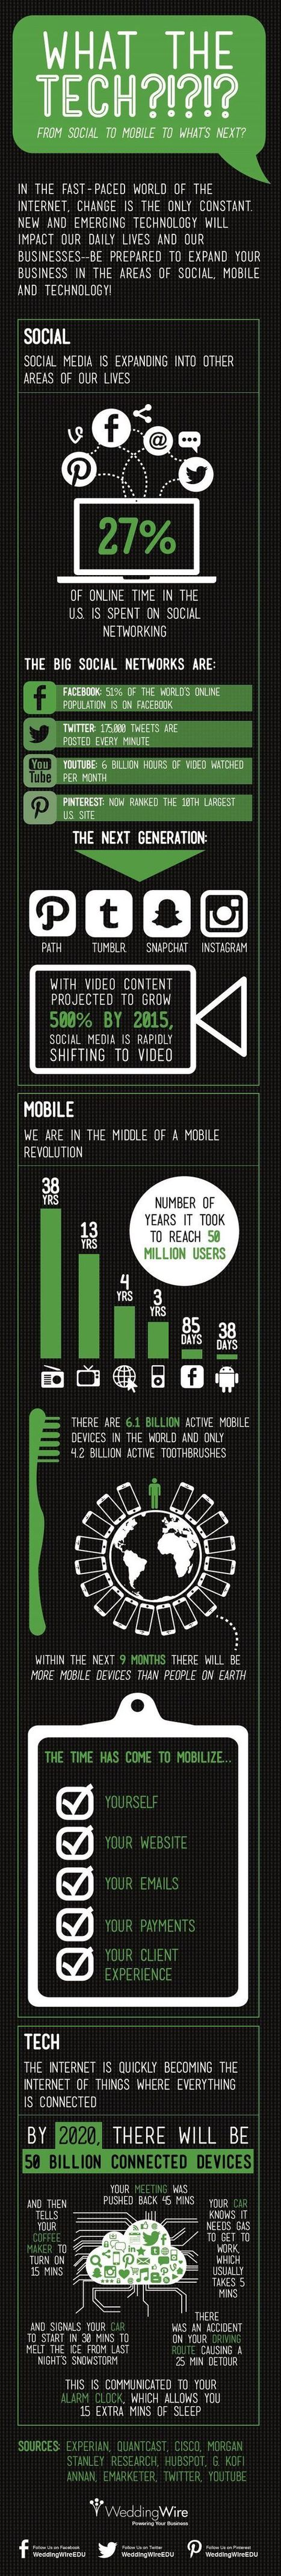 First Social Media, Then the Mobile Web, What's Next For The Internet? [Inforgraph] | Visual Content Strategy | Scoop.it